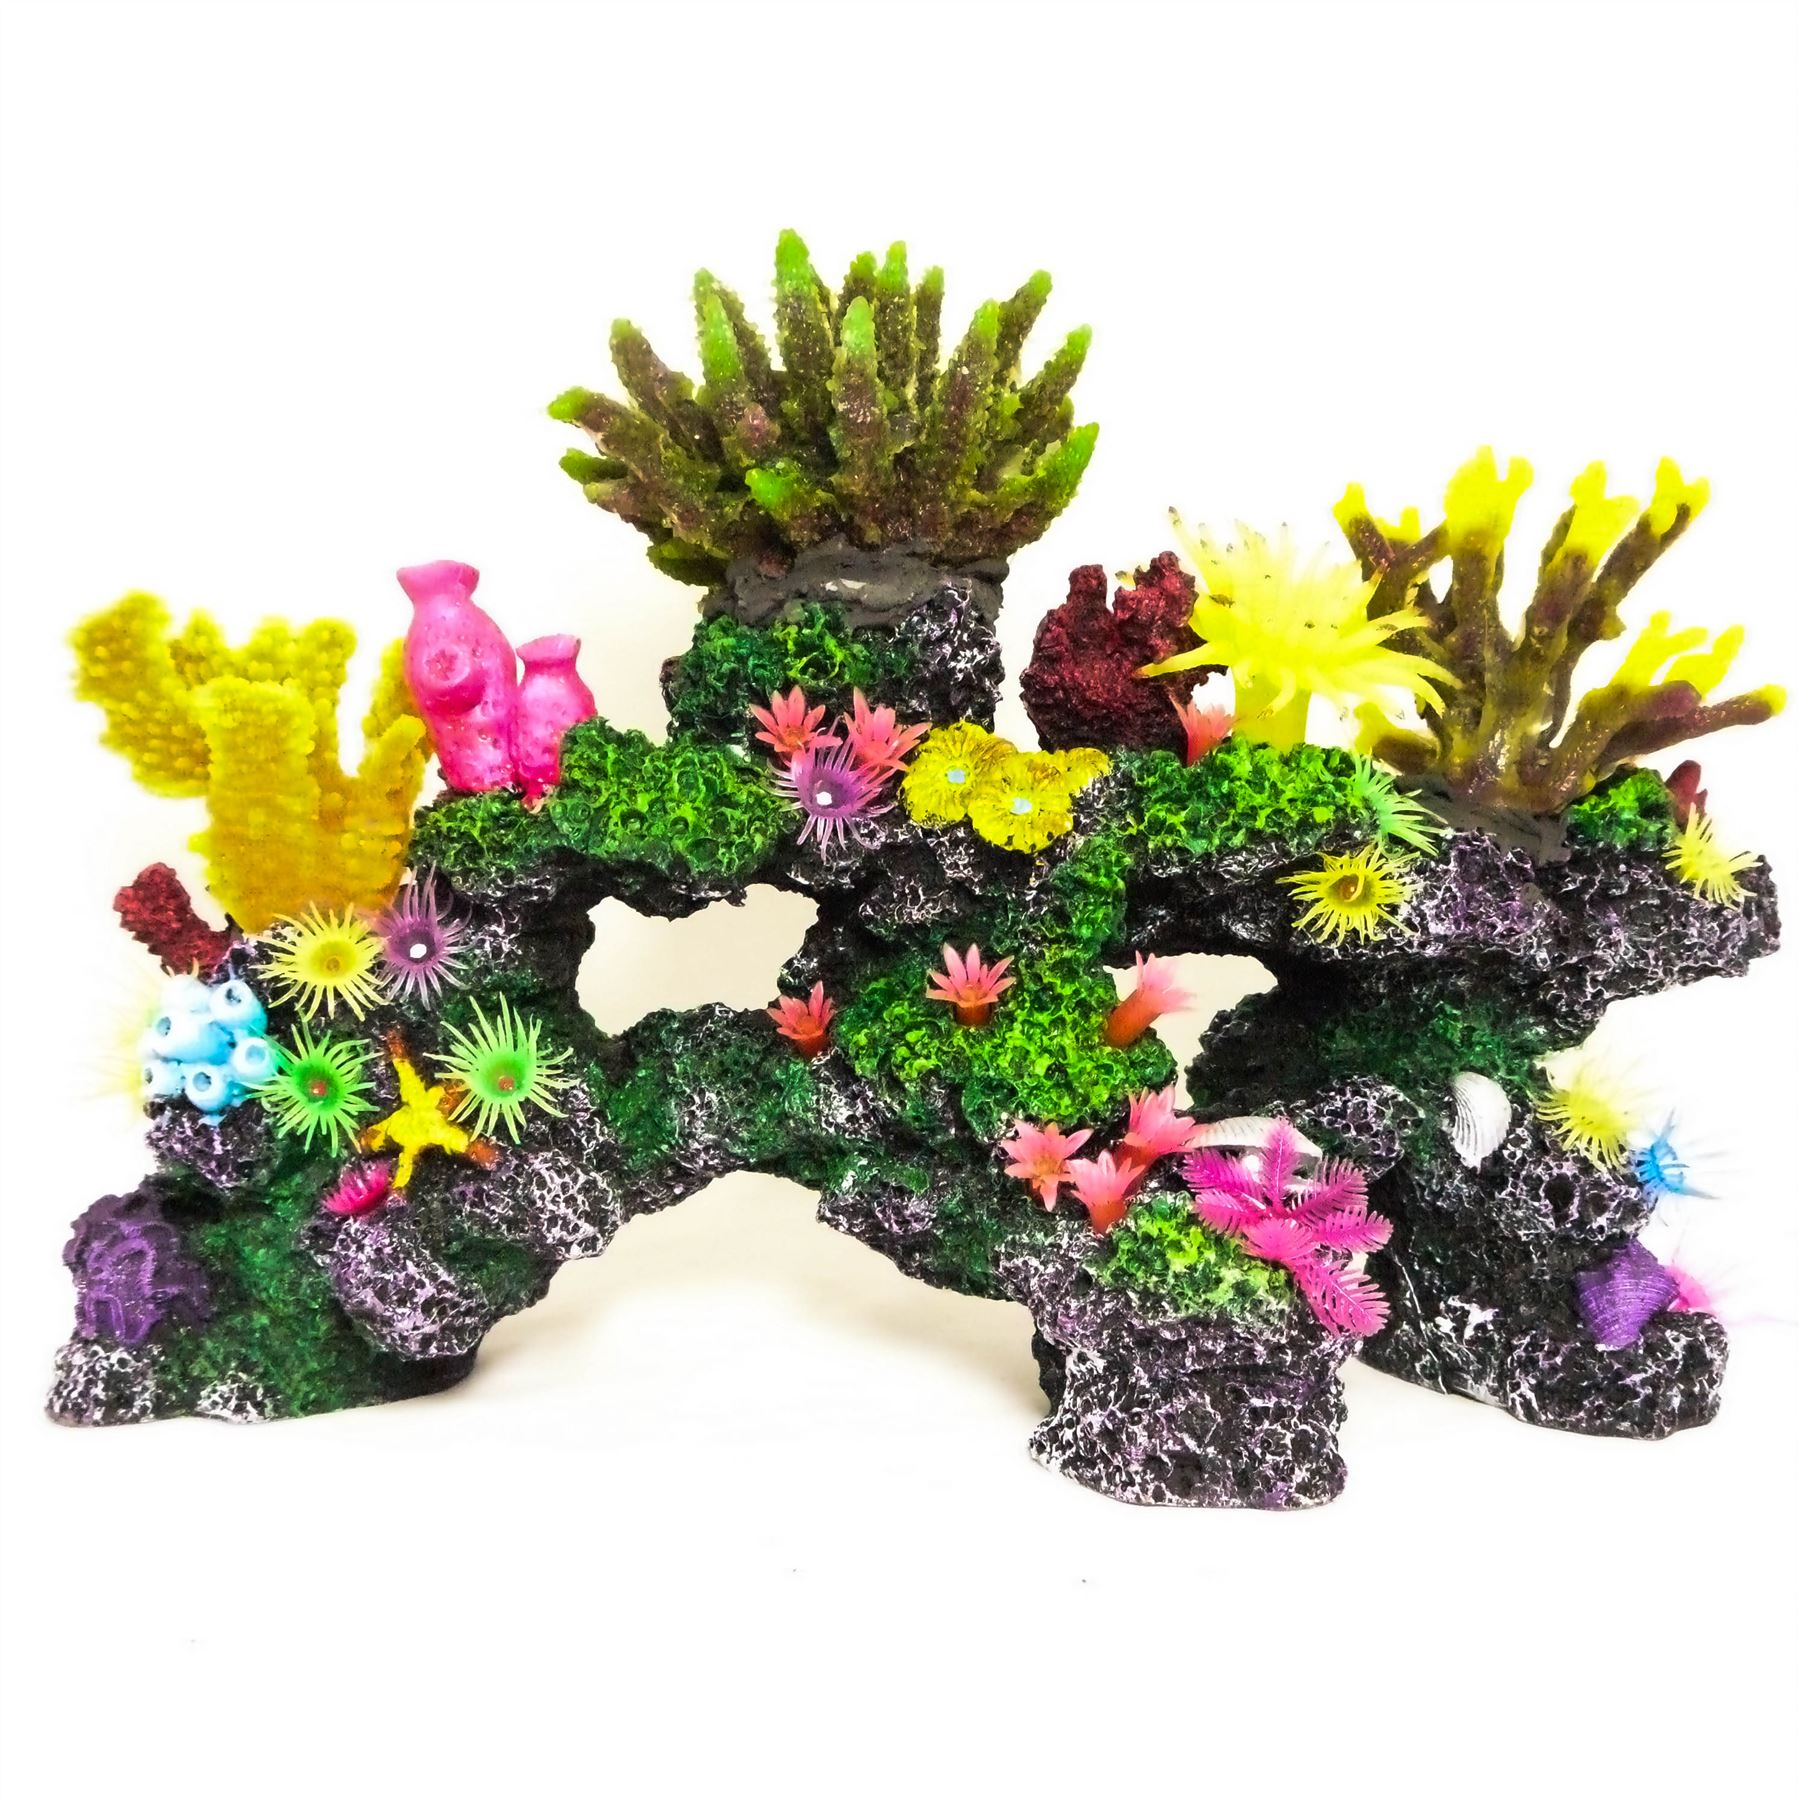 Realistic artificial aquarium coral reef extra large polyp for Artificial coral reef aquarium decoration uk